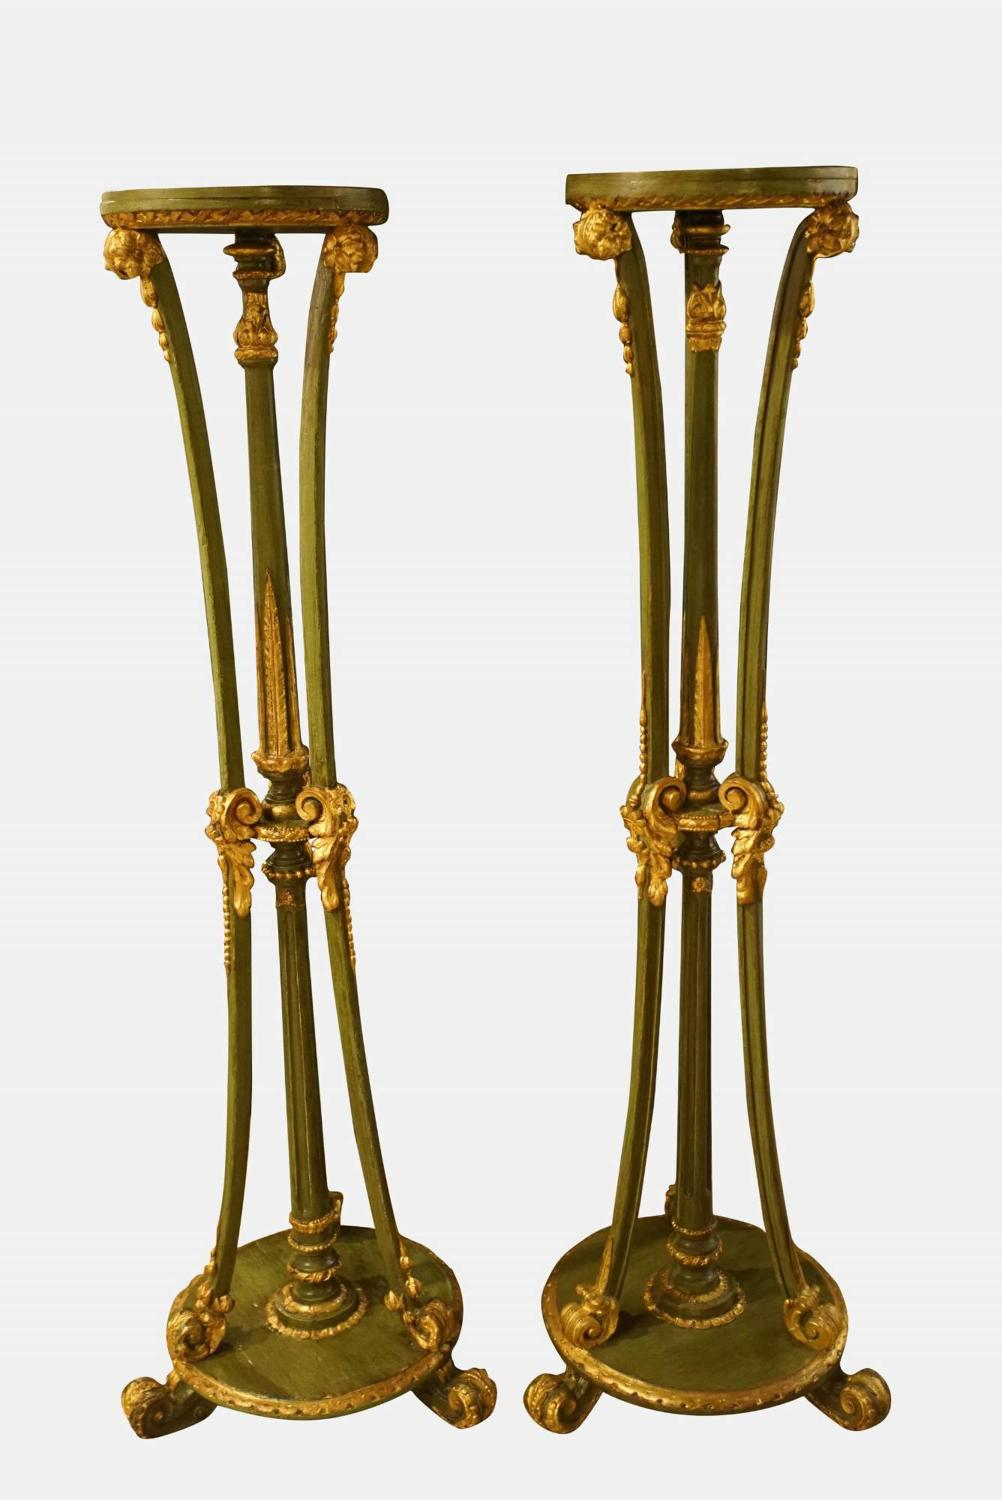 Pair of Early 20thC Torcheres